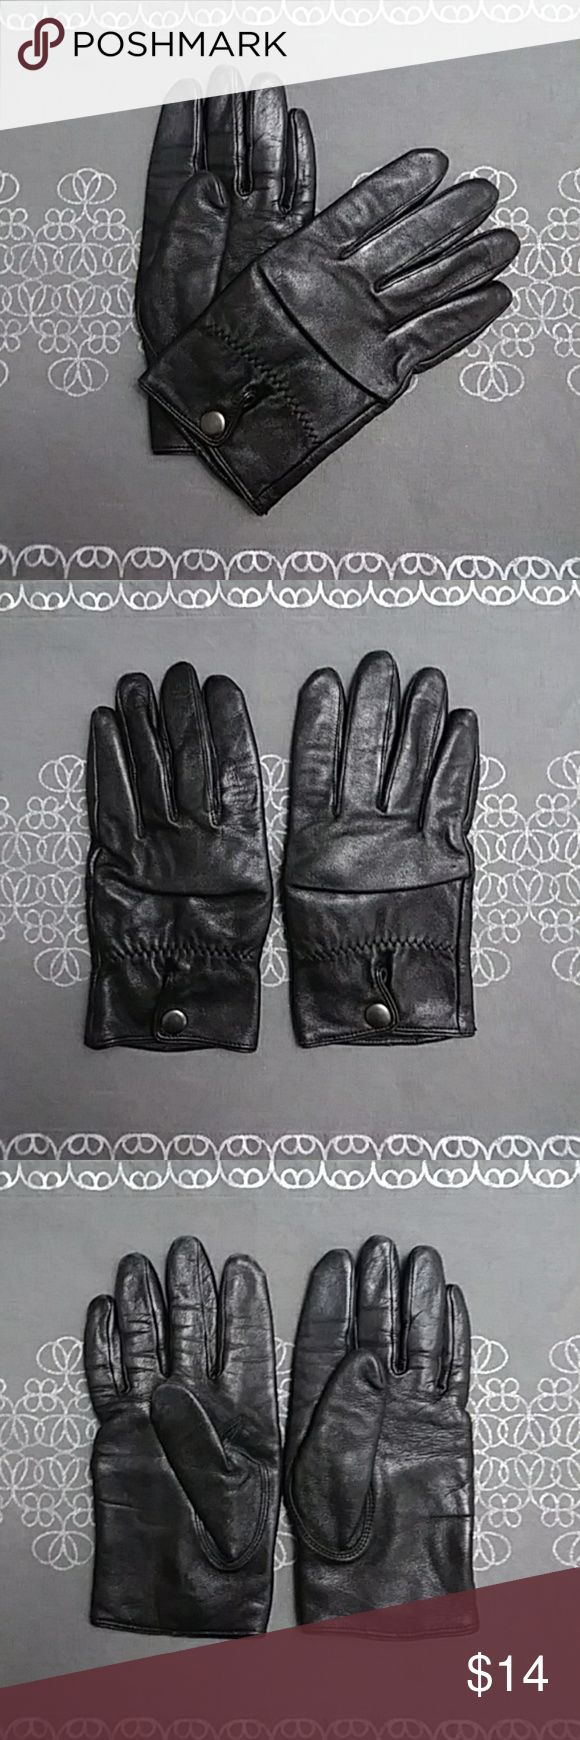 """WILSONS LEATHER Thinsulate Gloves - (M) WILSONS LEATHER Leather with Thinsulate Driving Gloves - Black. Snap closure, zig-zag stitched elasticised upper wrist Outer shell: 100% Black Leather  Lining: 100% nylon for comfort with Thinsulate inner lining of 65% olefin/35% polyester for warmth.Preowned, EUC; just a bit of wear to lower fingertips (please see photos). Size: M Finger (Middle): 3-1/2"""" Wilsons Leather Accessories Gloves & Mittens"""